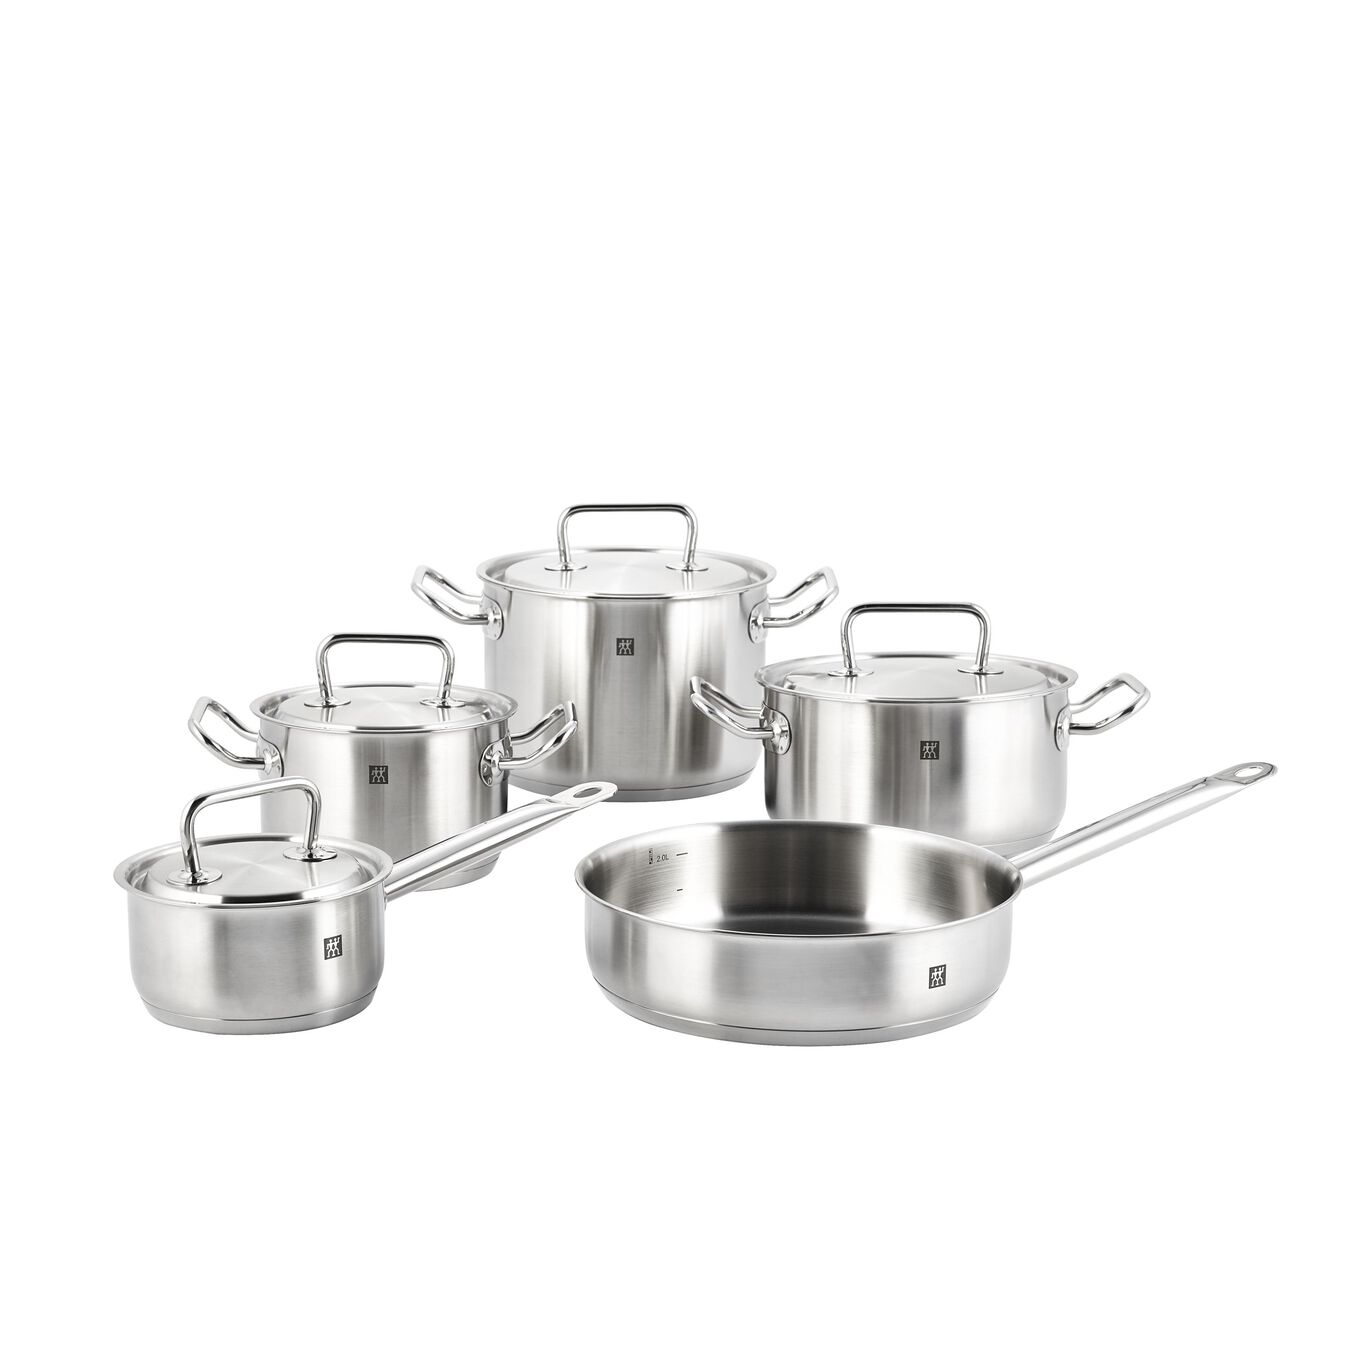 9 Piece 18/10 Stainless Steel Cookware set,,large 1